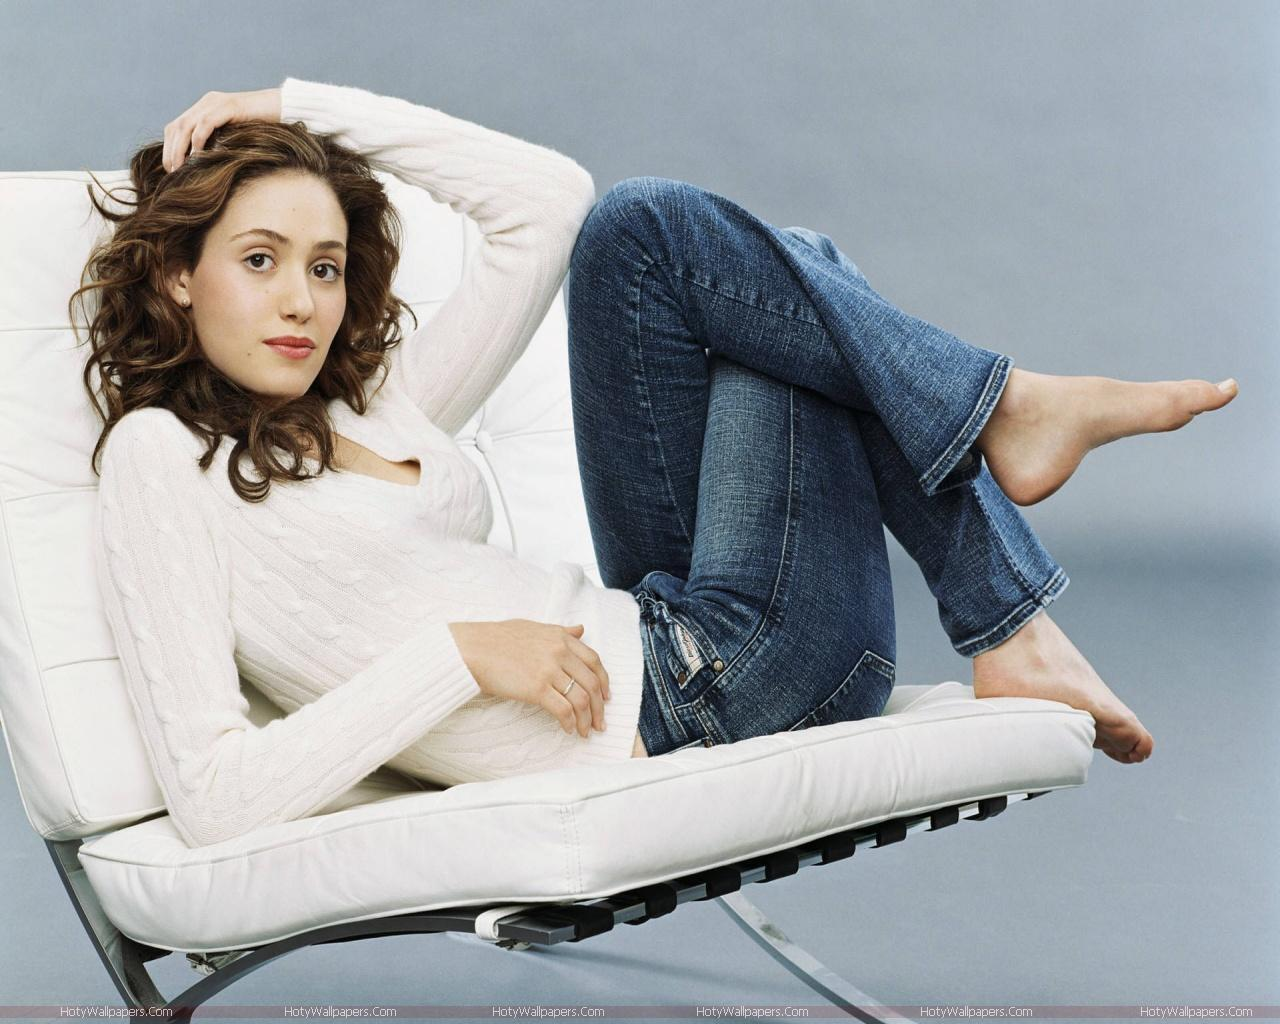 http://3.bp.blogspot.com/-tUPVenVFauw/TlYbbSfpqTI/AAAAAAAAJsI/HzpQydmgrXo/s1600/hollywood_actress-Emmy-Rossum-wide-wallpaper.jpg